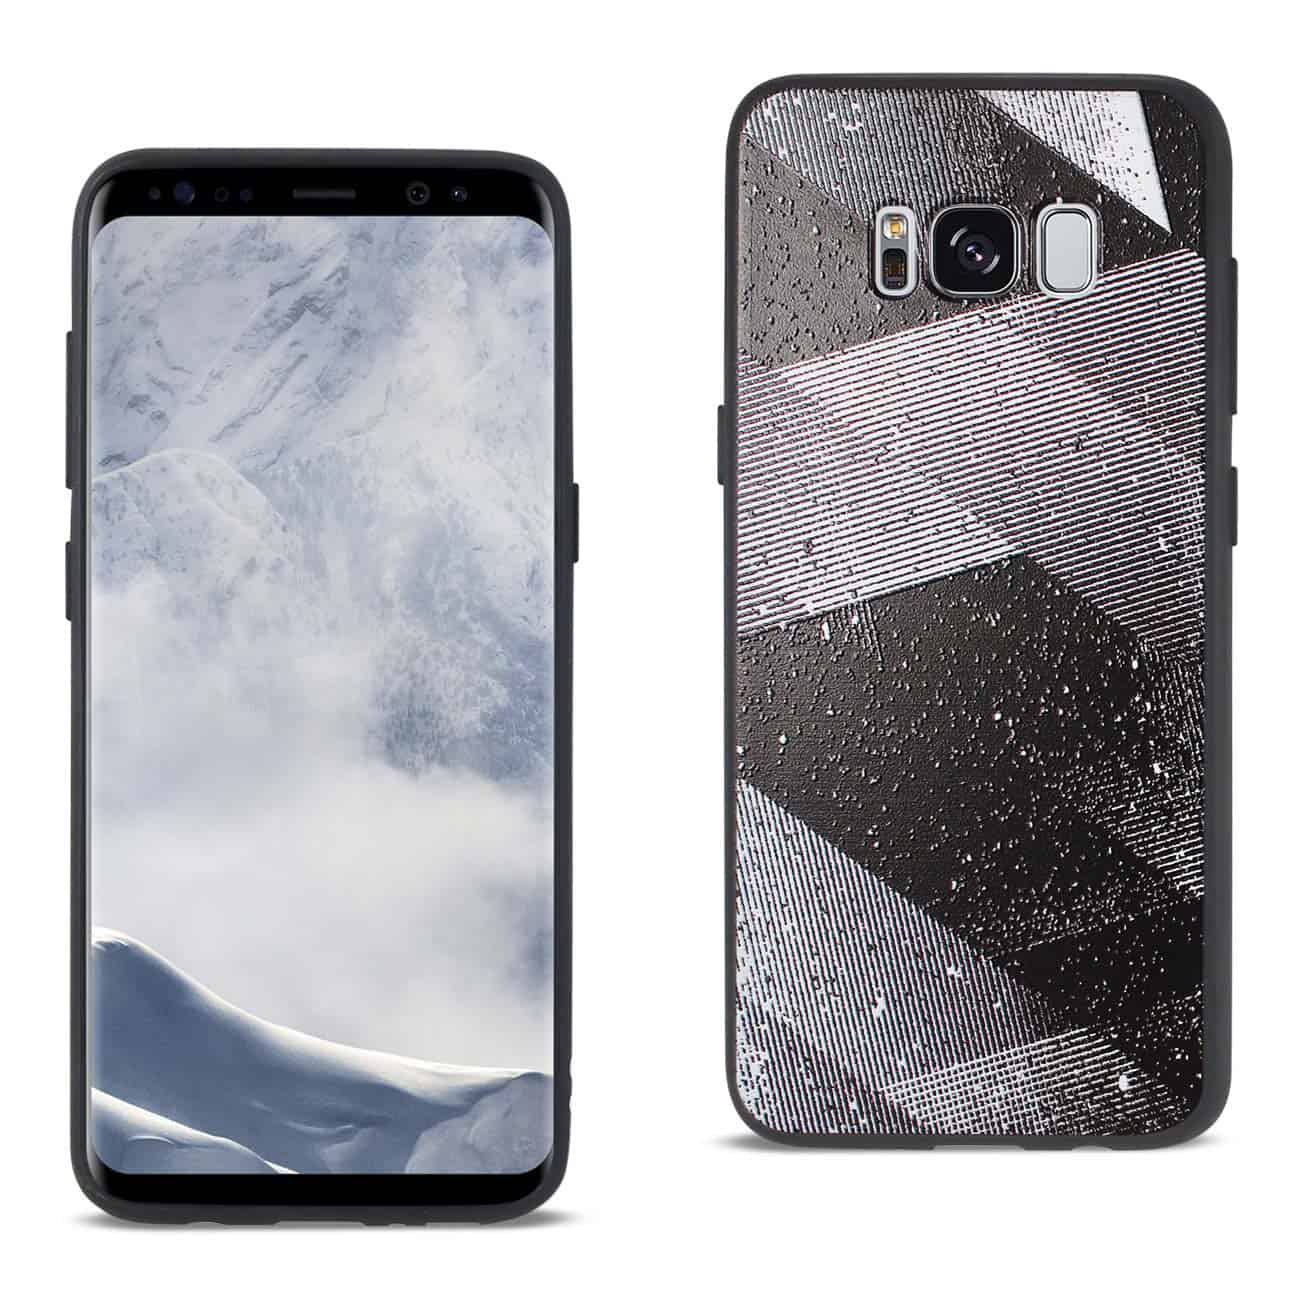 SAMSUNG GALAXY S8 DESIGN TPU CASE WITH SHADES OF OBLIQUE STRIPES